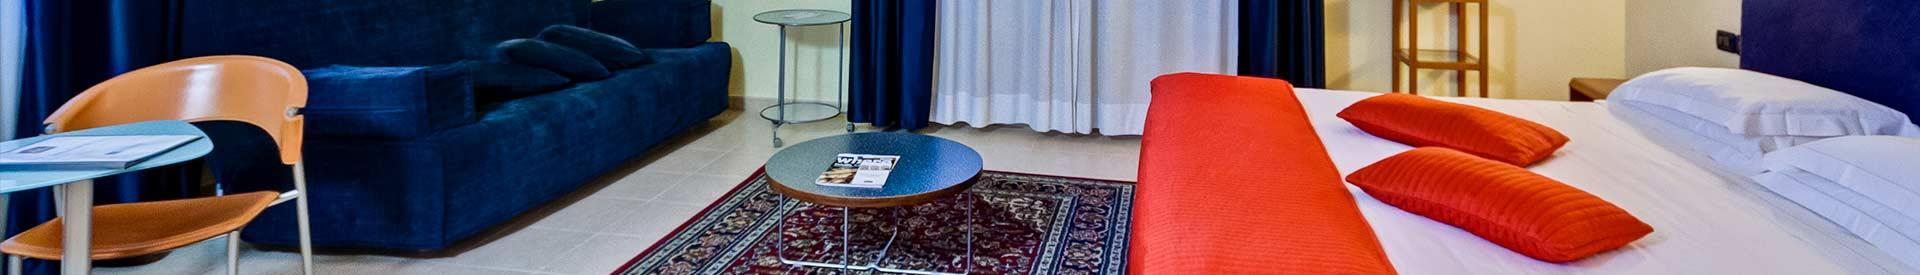 Looking for a hotel for your stay in Roma (RM)? Book/reserve at the Best Western Blu Hotel